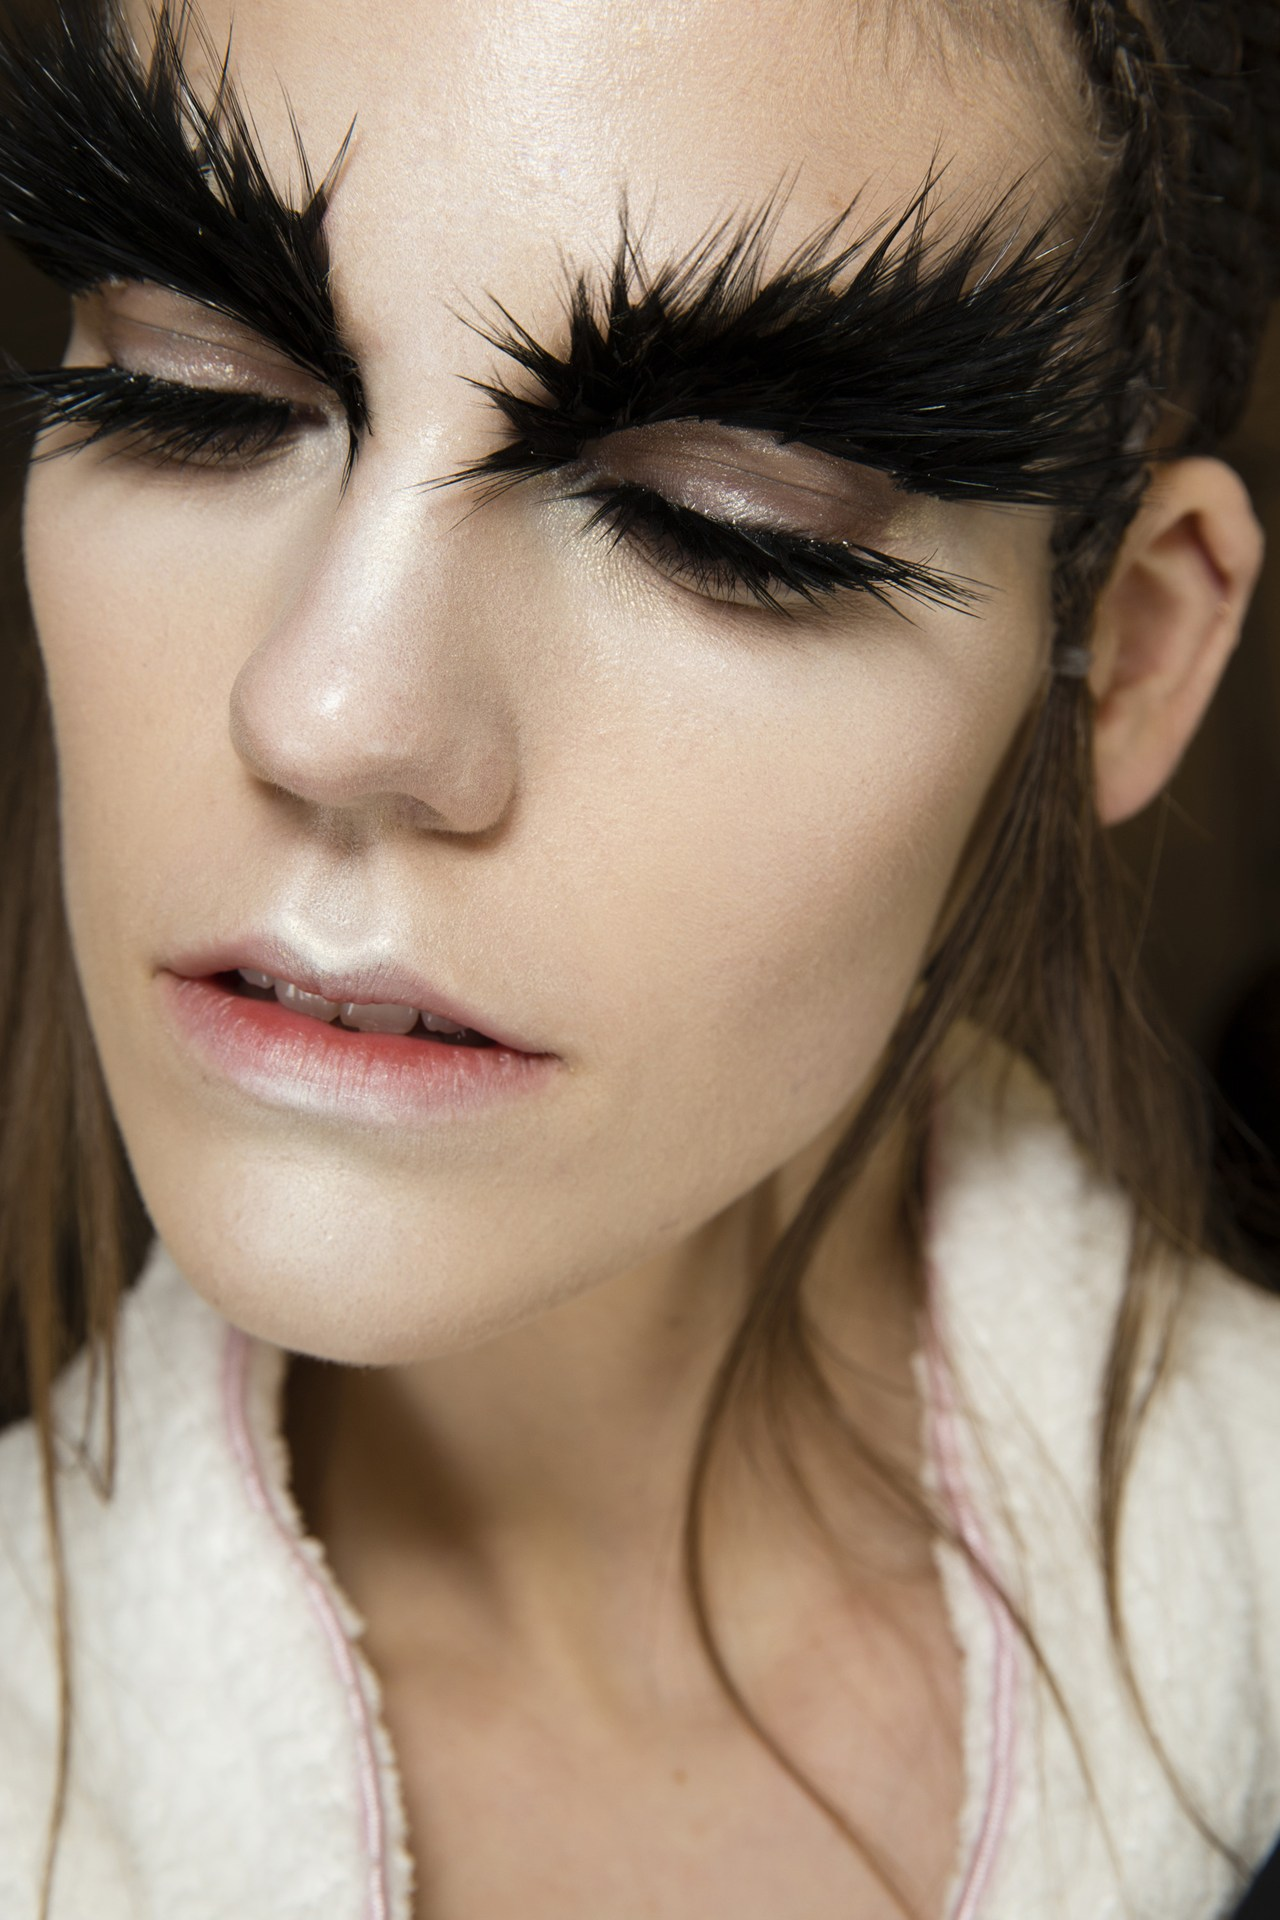 Makeup by Pat McGrath backstage at Alexander McQueen AW2014 ( Source )